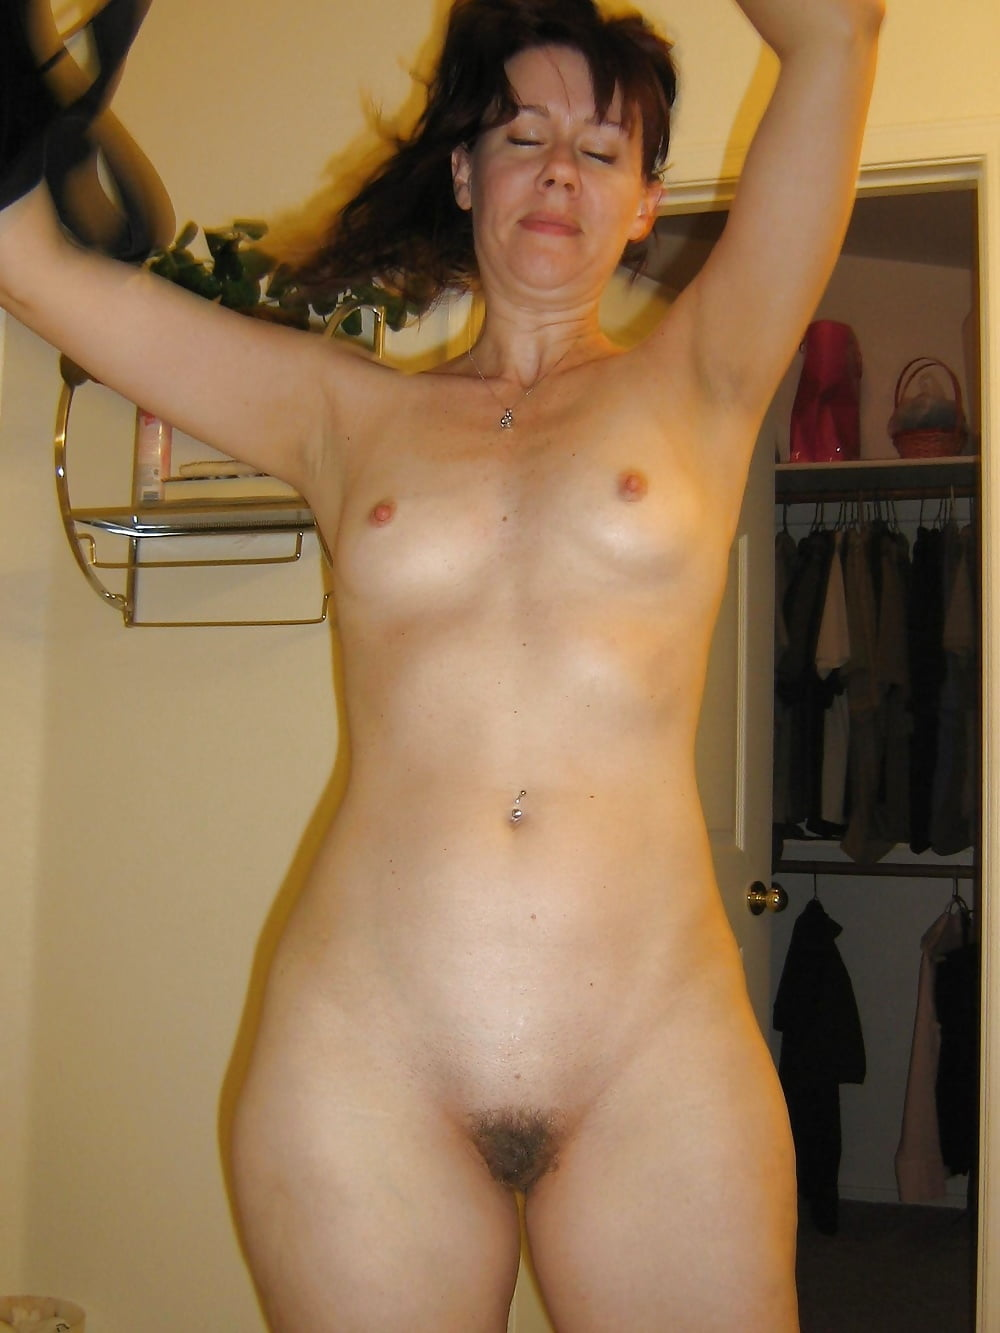 From The Moshe Files Nude Amature Milf 2 - 30 Pics  Xhamster-6547